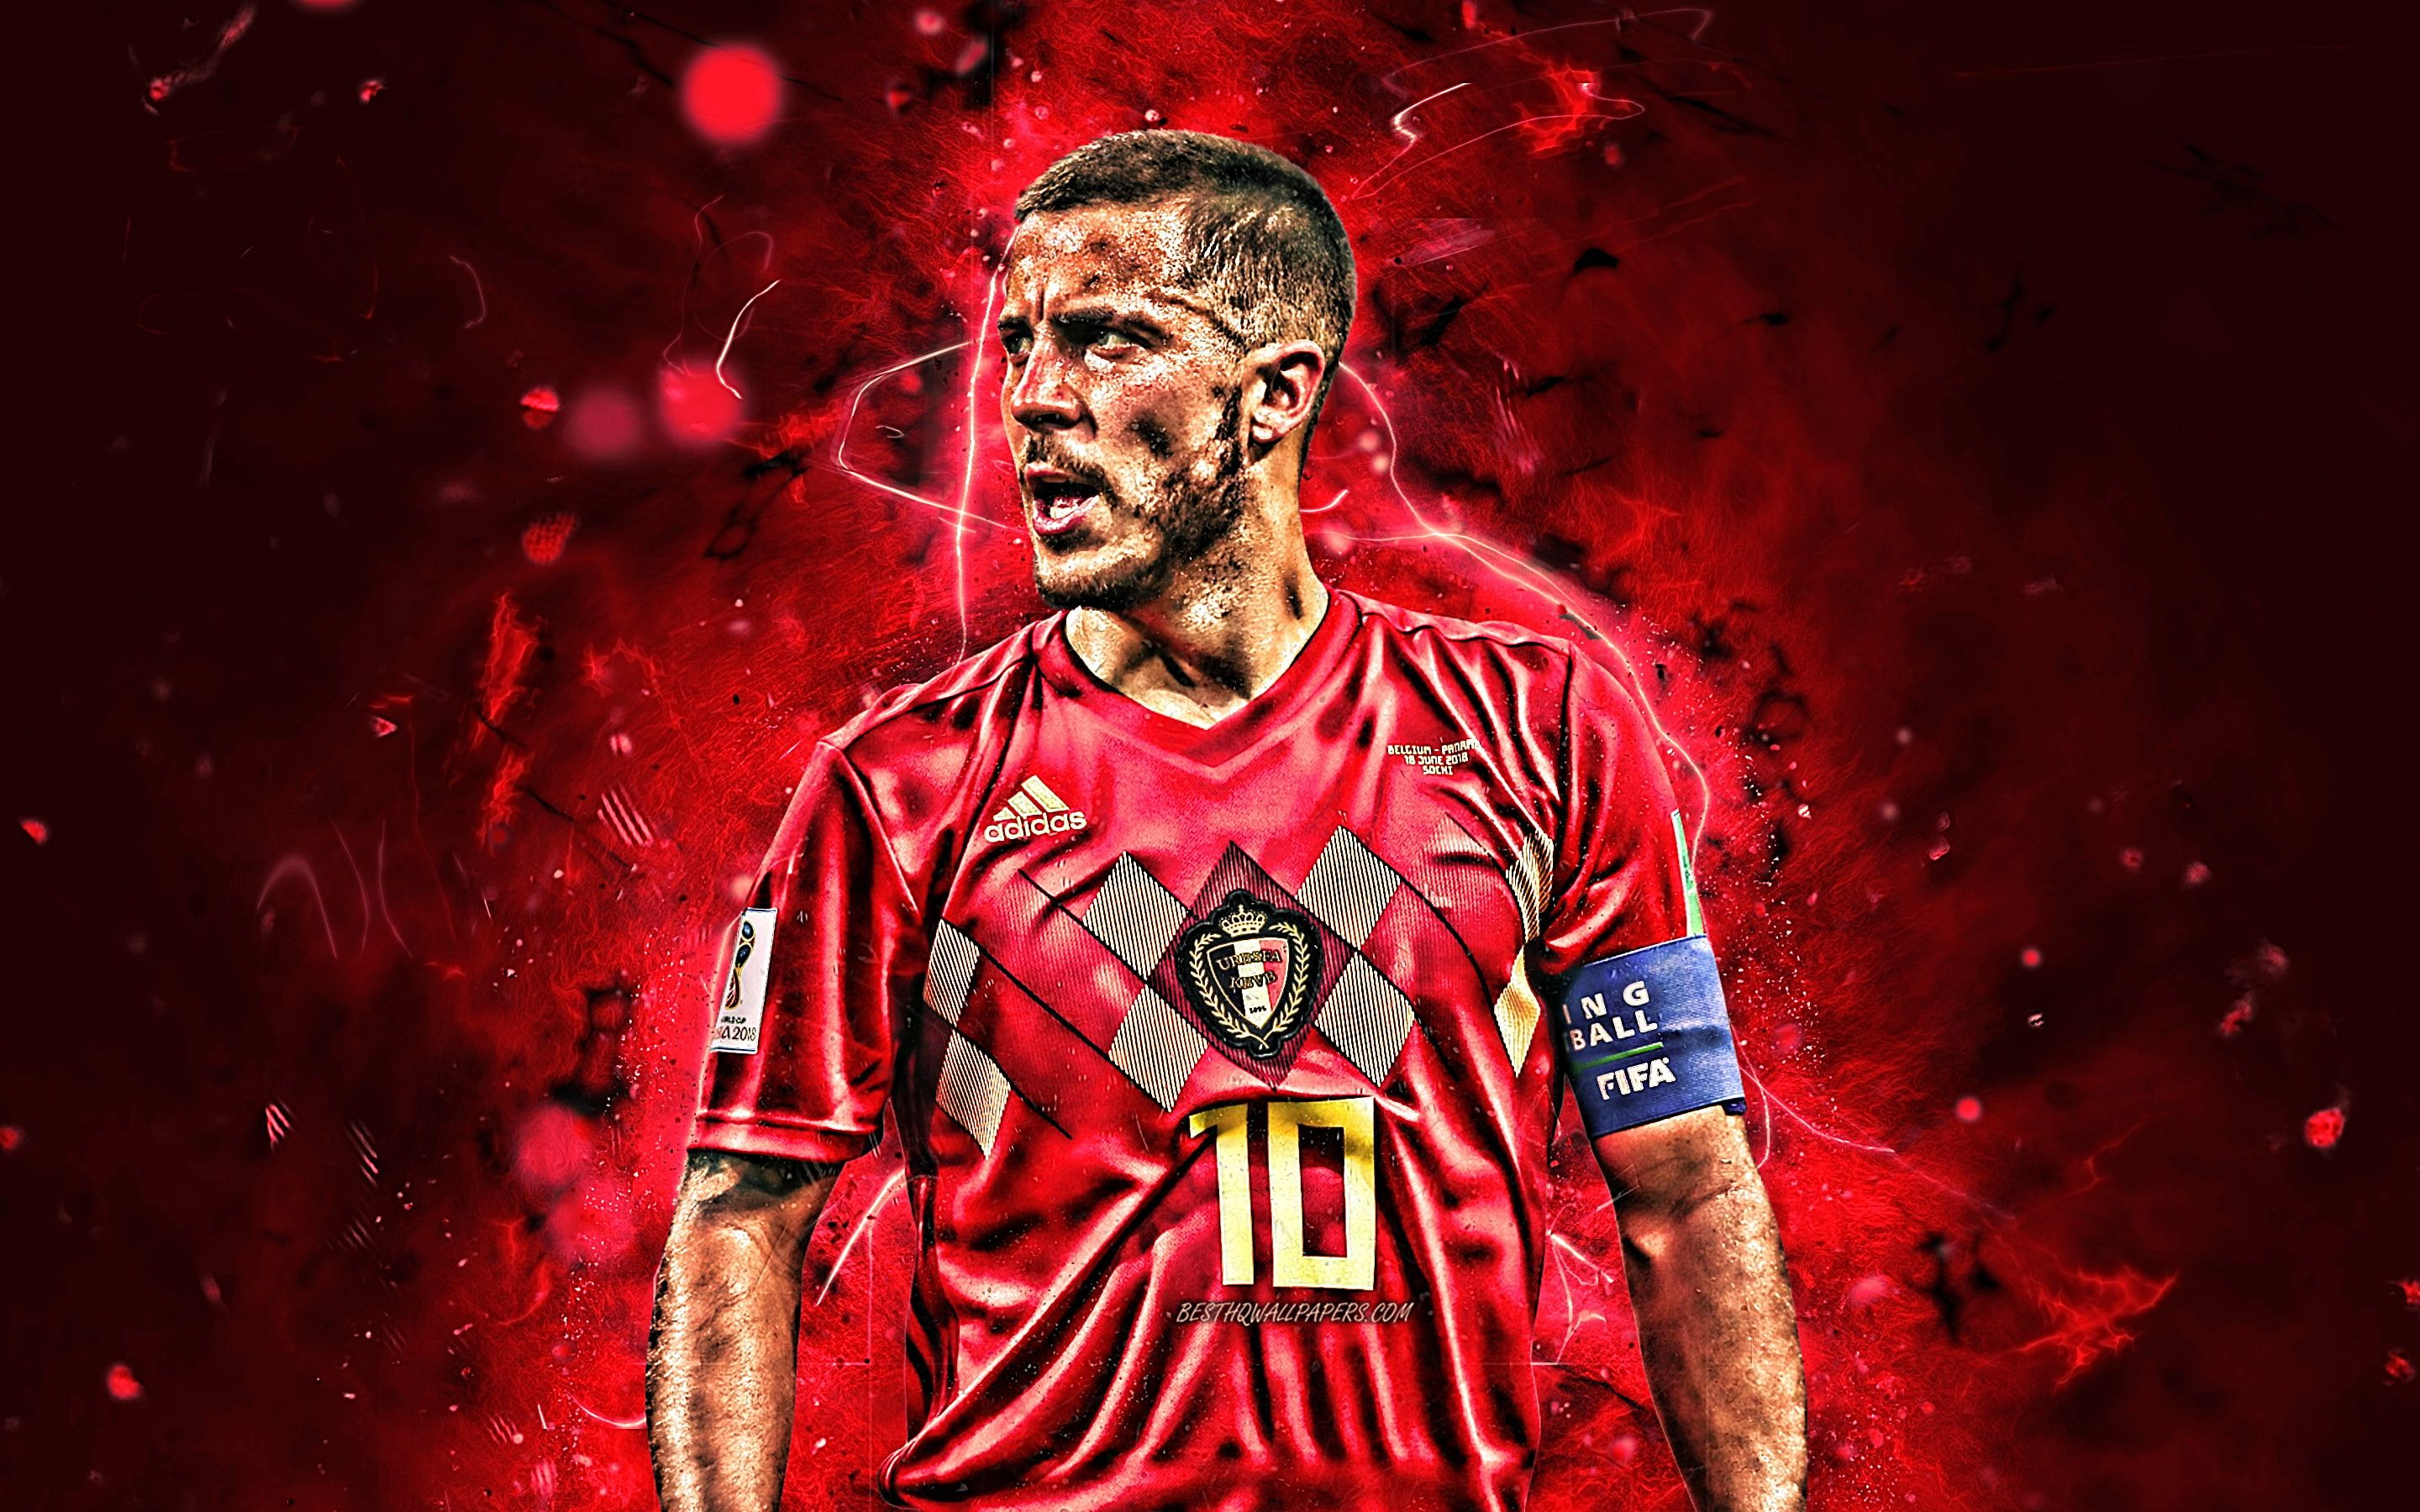 Soccer Eden Hazard Belgian 2k Wallpaper Hdwallpaper Desktop In 2020 Eden Hazard Football Team Soccer